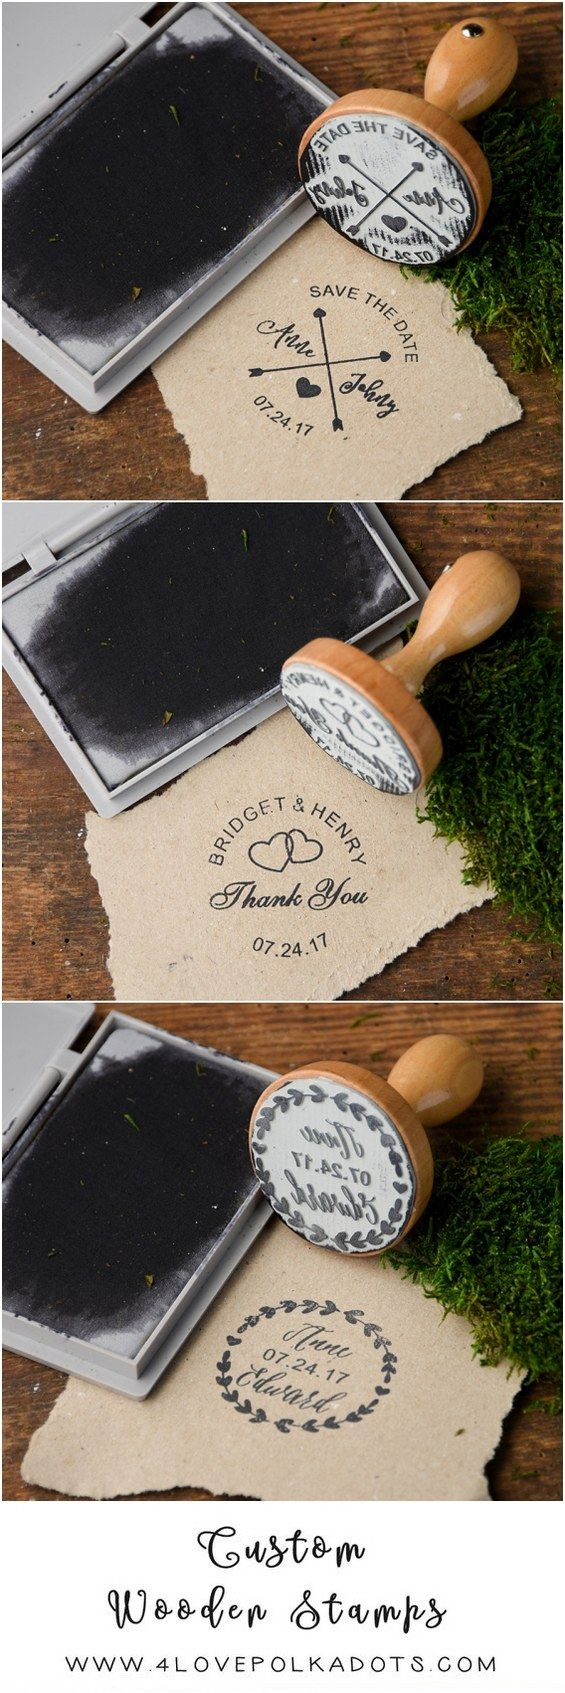 Rustic country wooden wedding stamps #rusticwedding #countrywedding